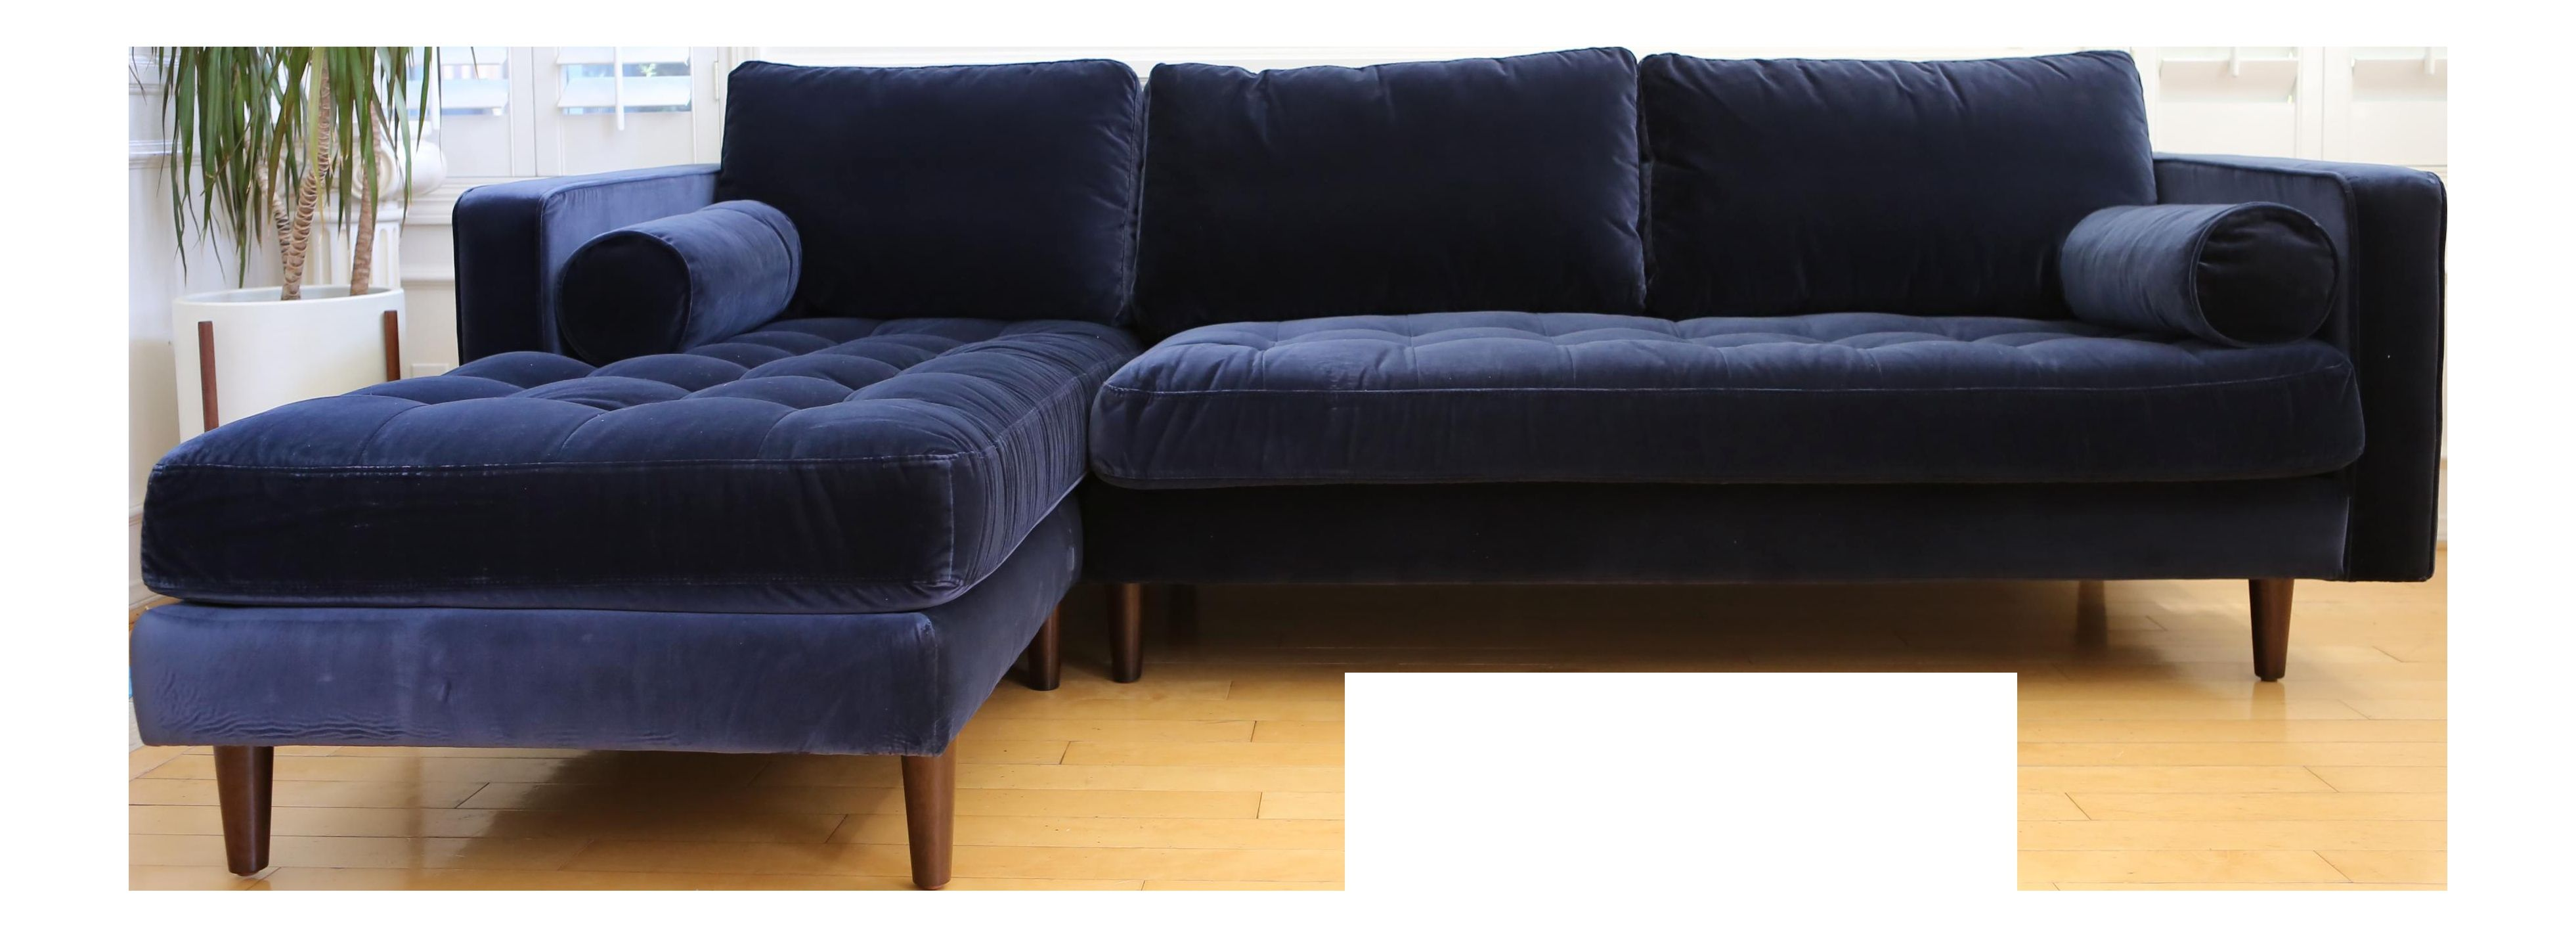 Mid Century Modern Navy Blue Velvet Sectional Sofa